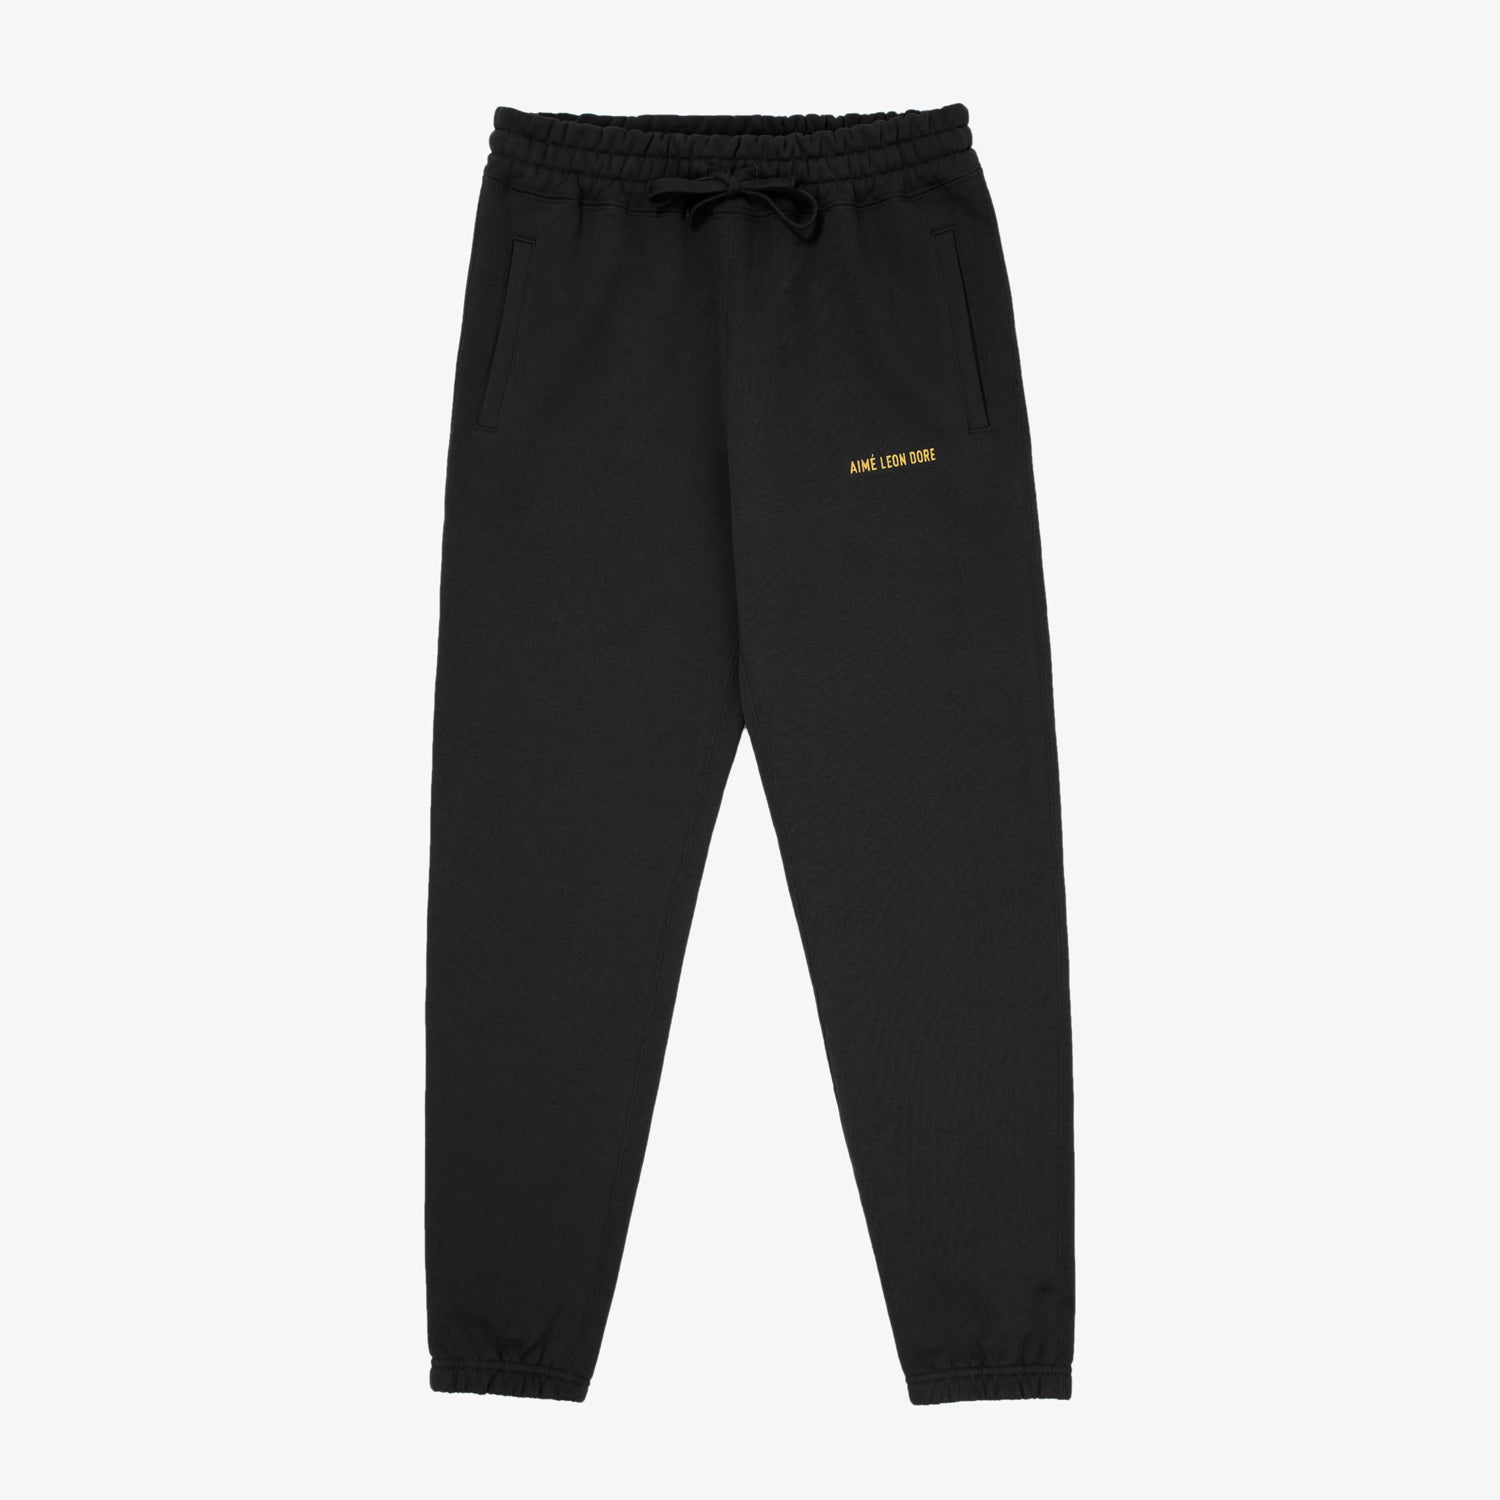 ALD LOGO SWEAT PANT - BLACK